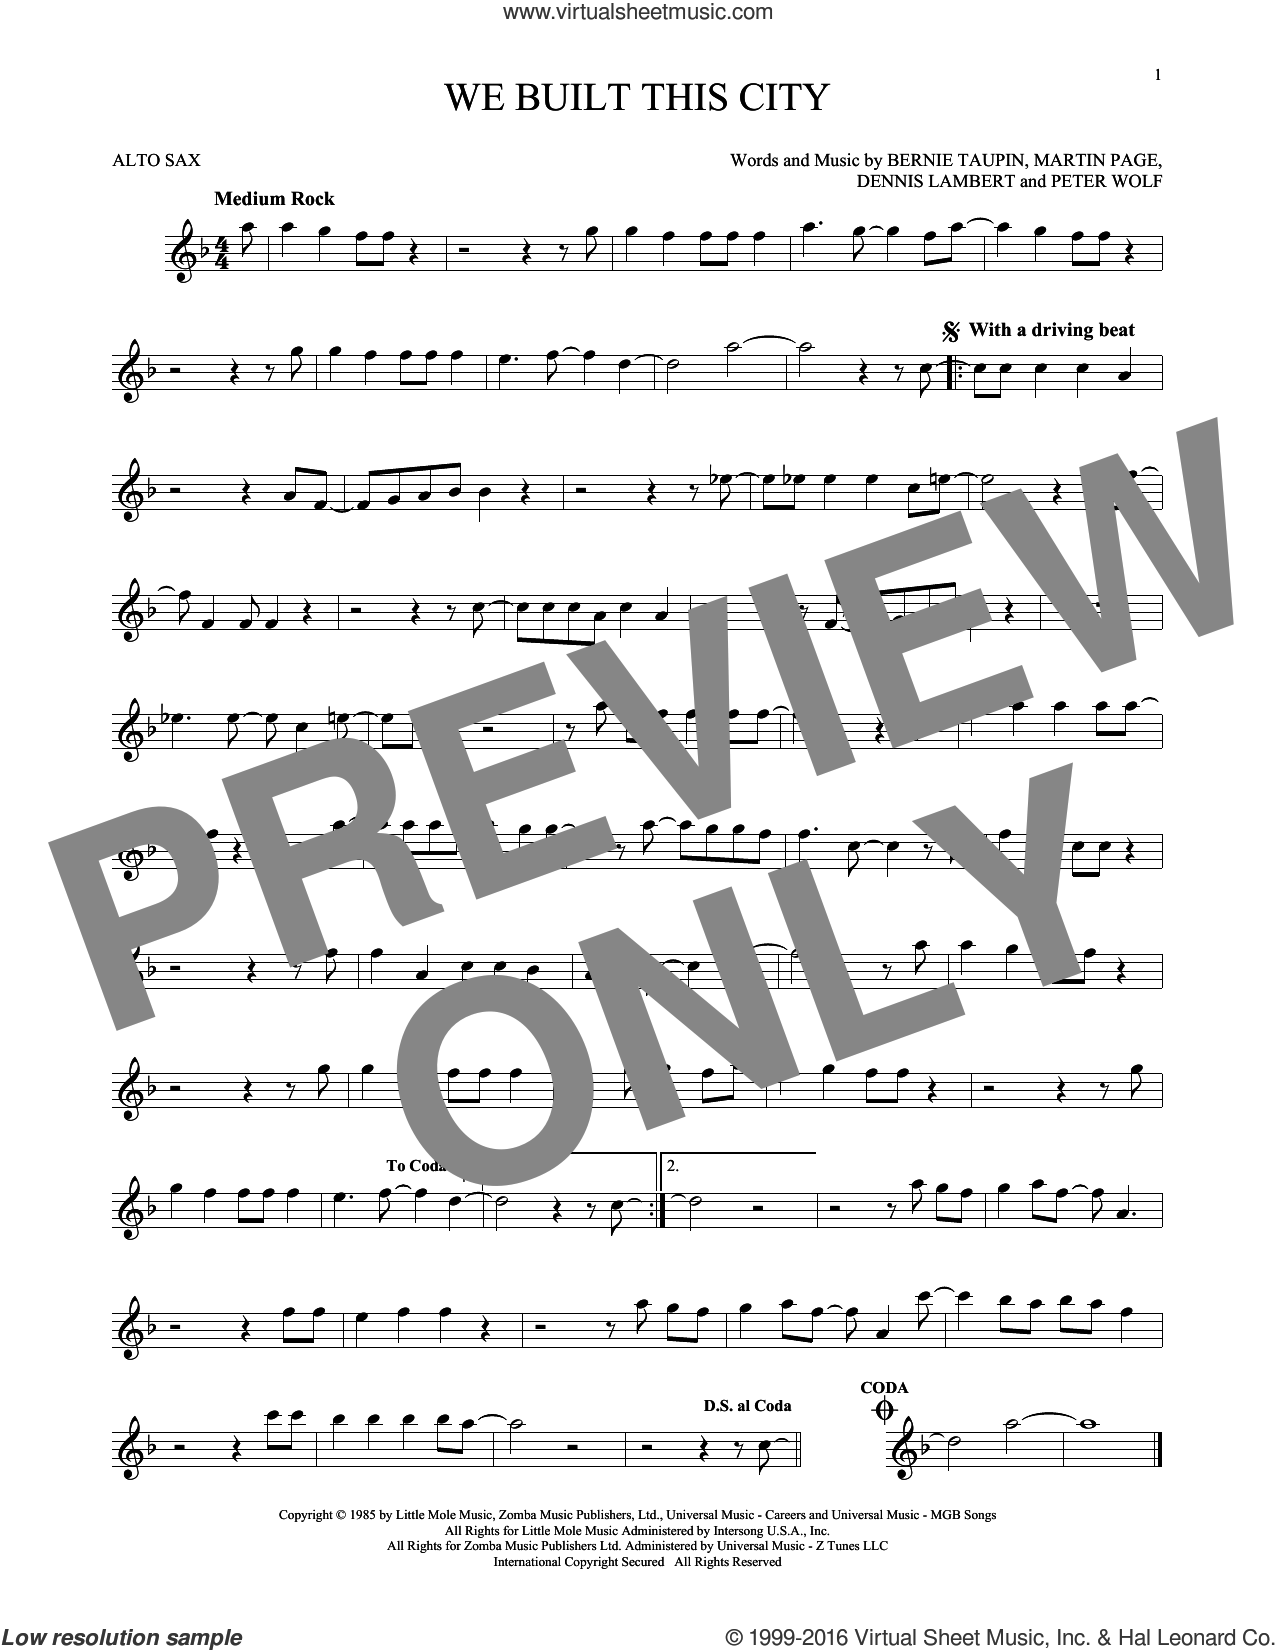 We Built This City sheet music for alto saxophone solo by Starship, Bernie Taupin, Dennis Lambert, Martin George Page and Peter Wolf, intermediate skill level